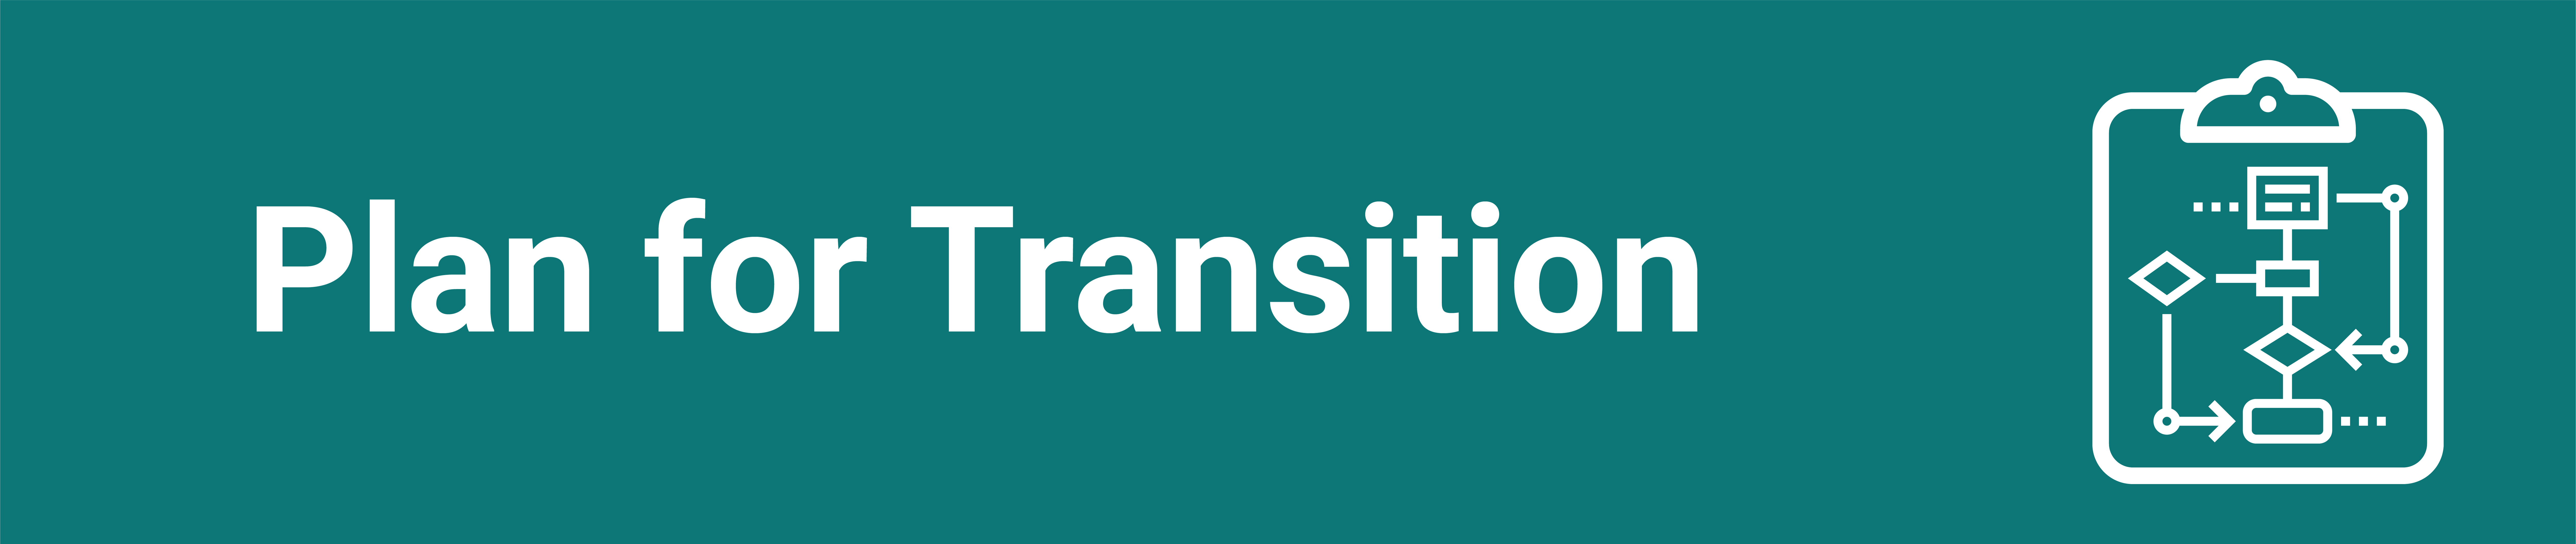 Teal background with an icon of a flow chart on a clipboard and the words Plan for Transition in white